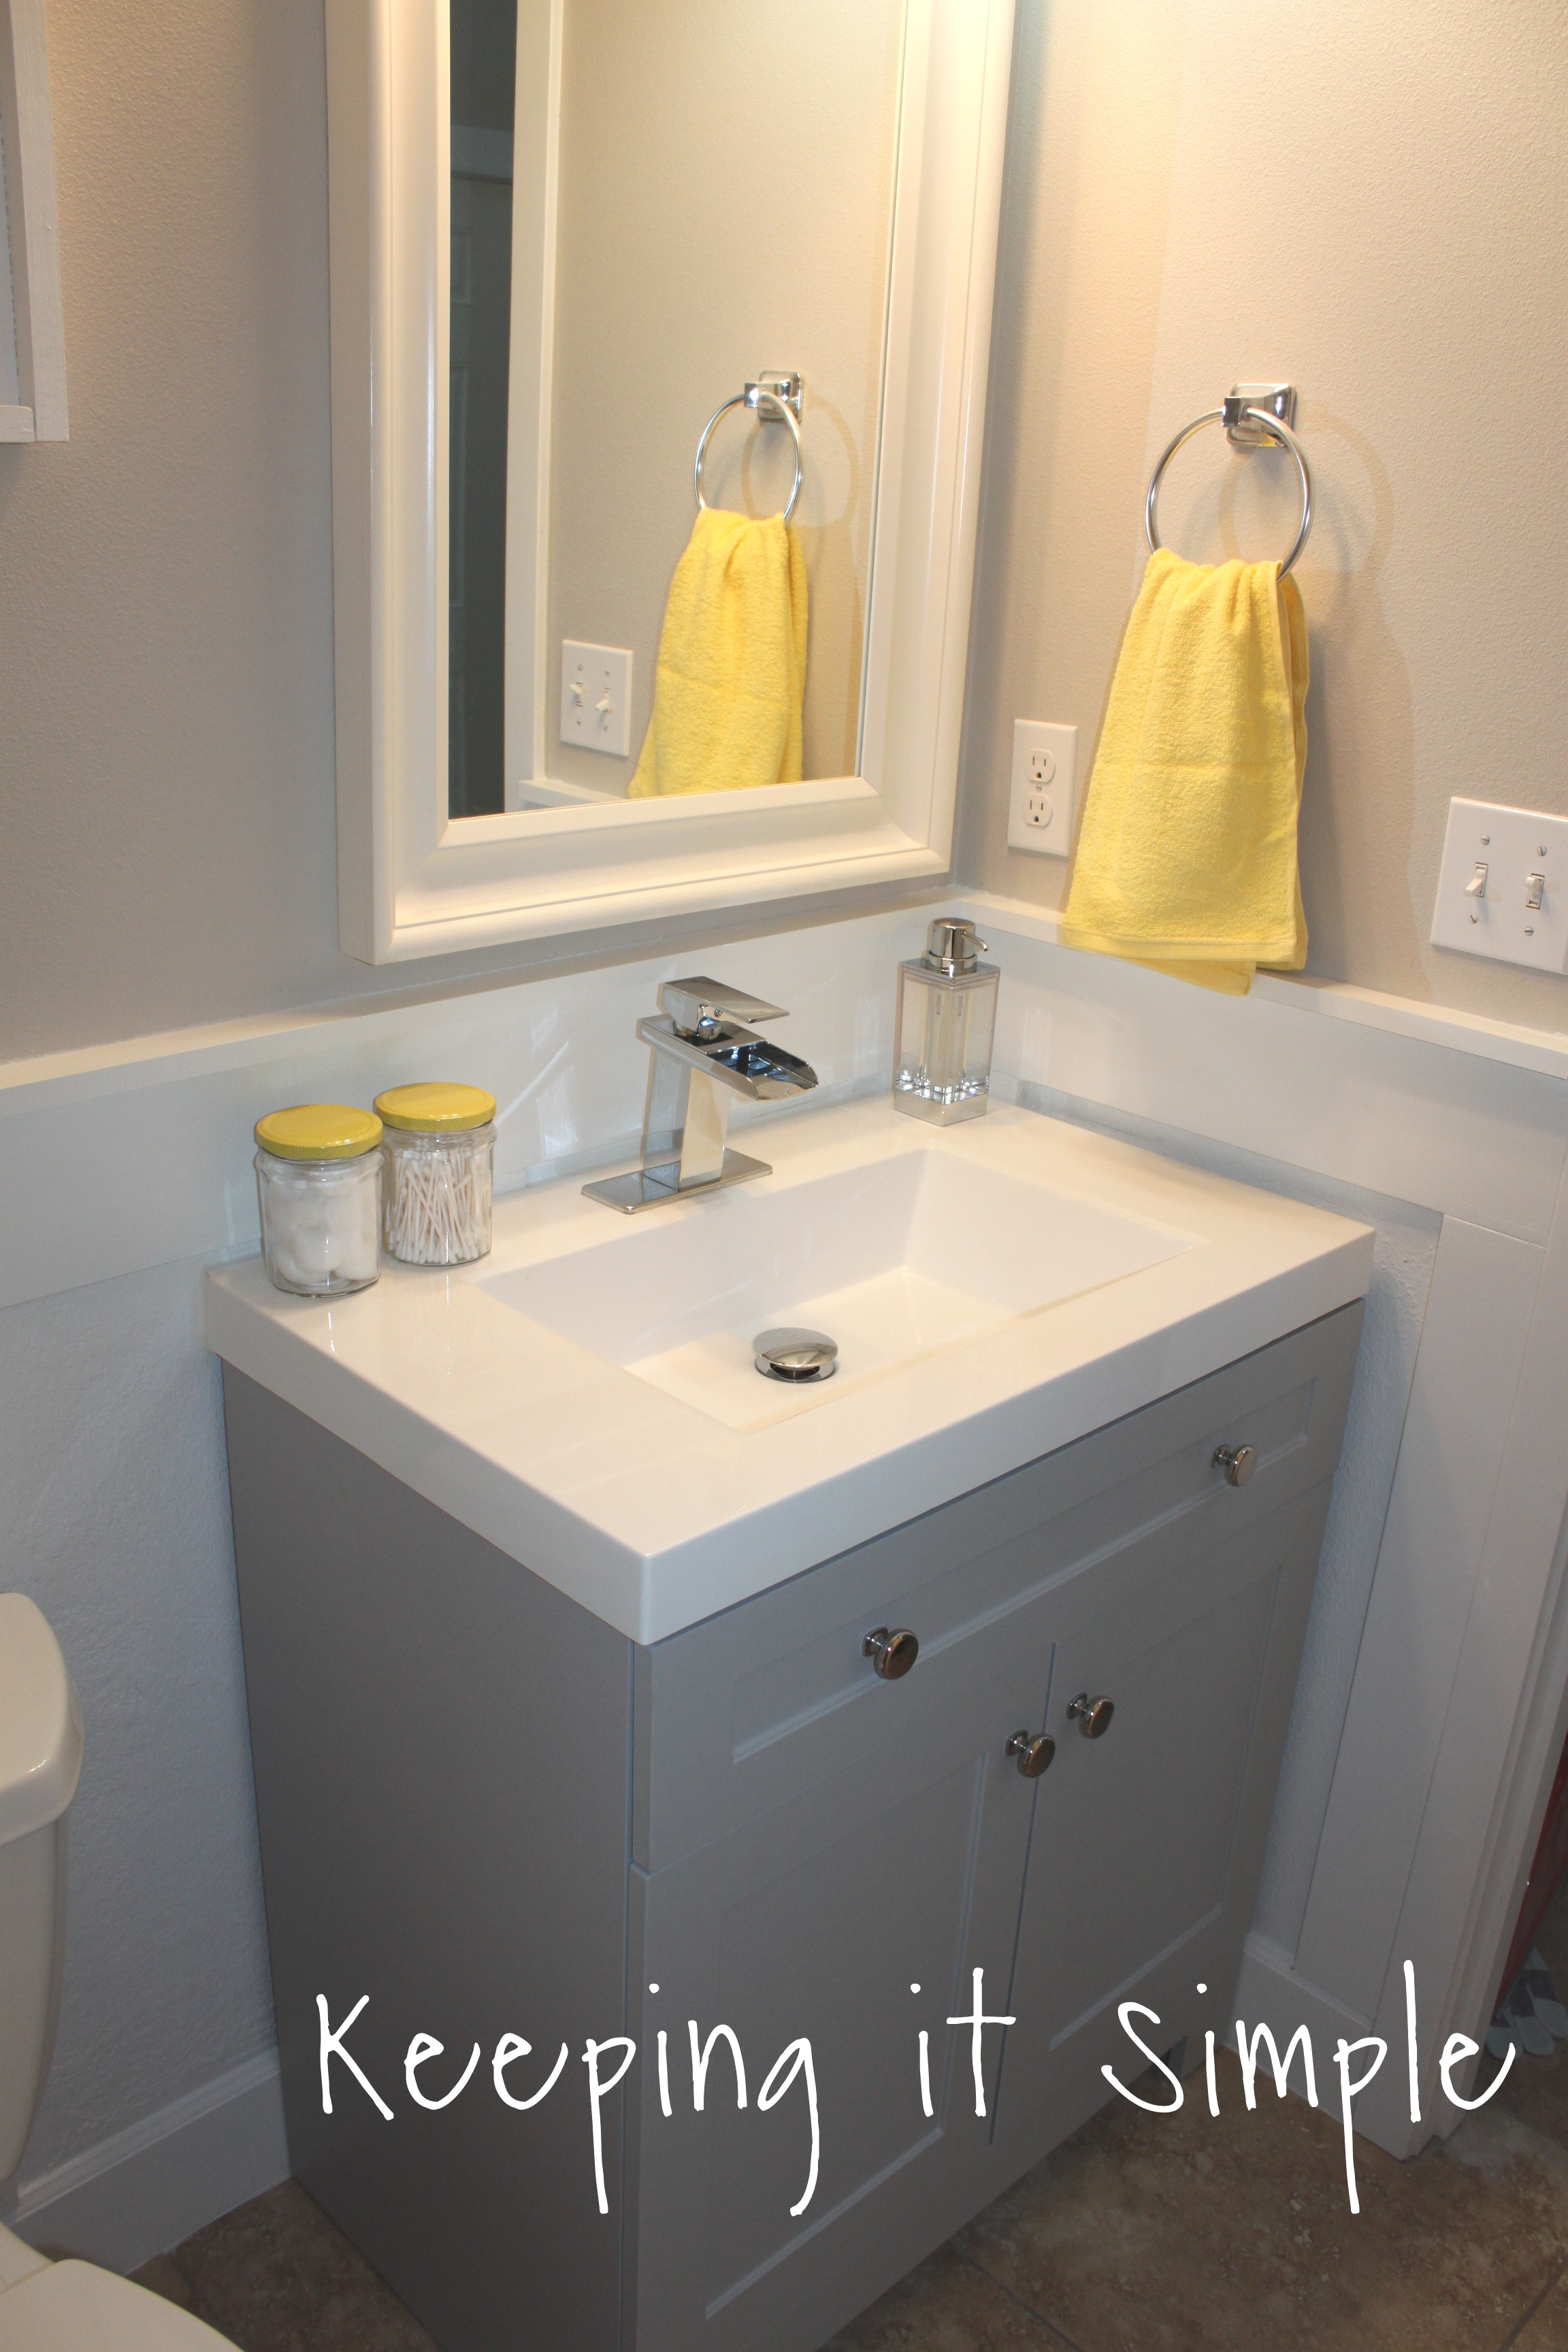 small-bathroom-makeover-ideas-yellow-and-gray (244)24 • Keeping it Simple